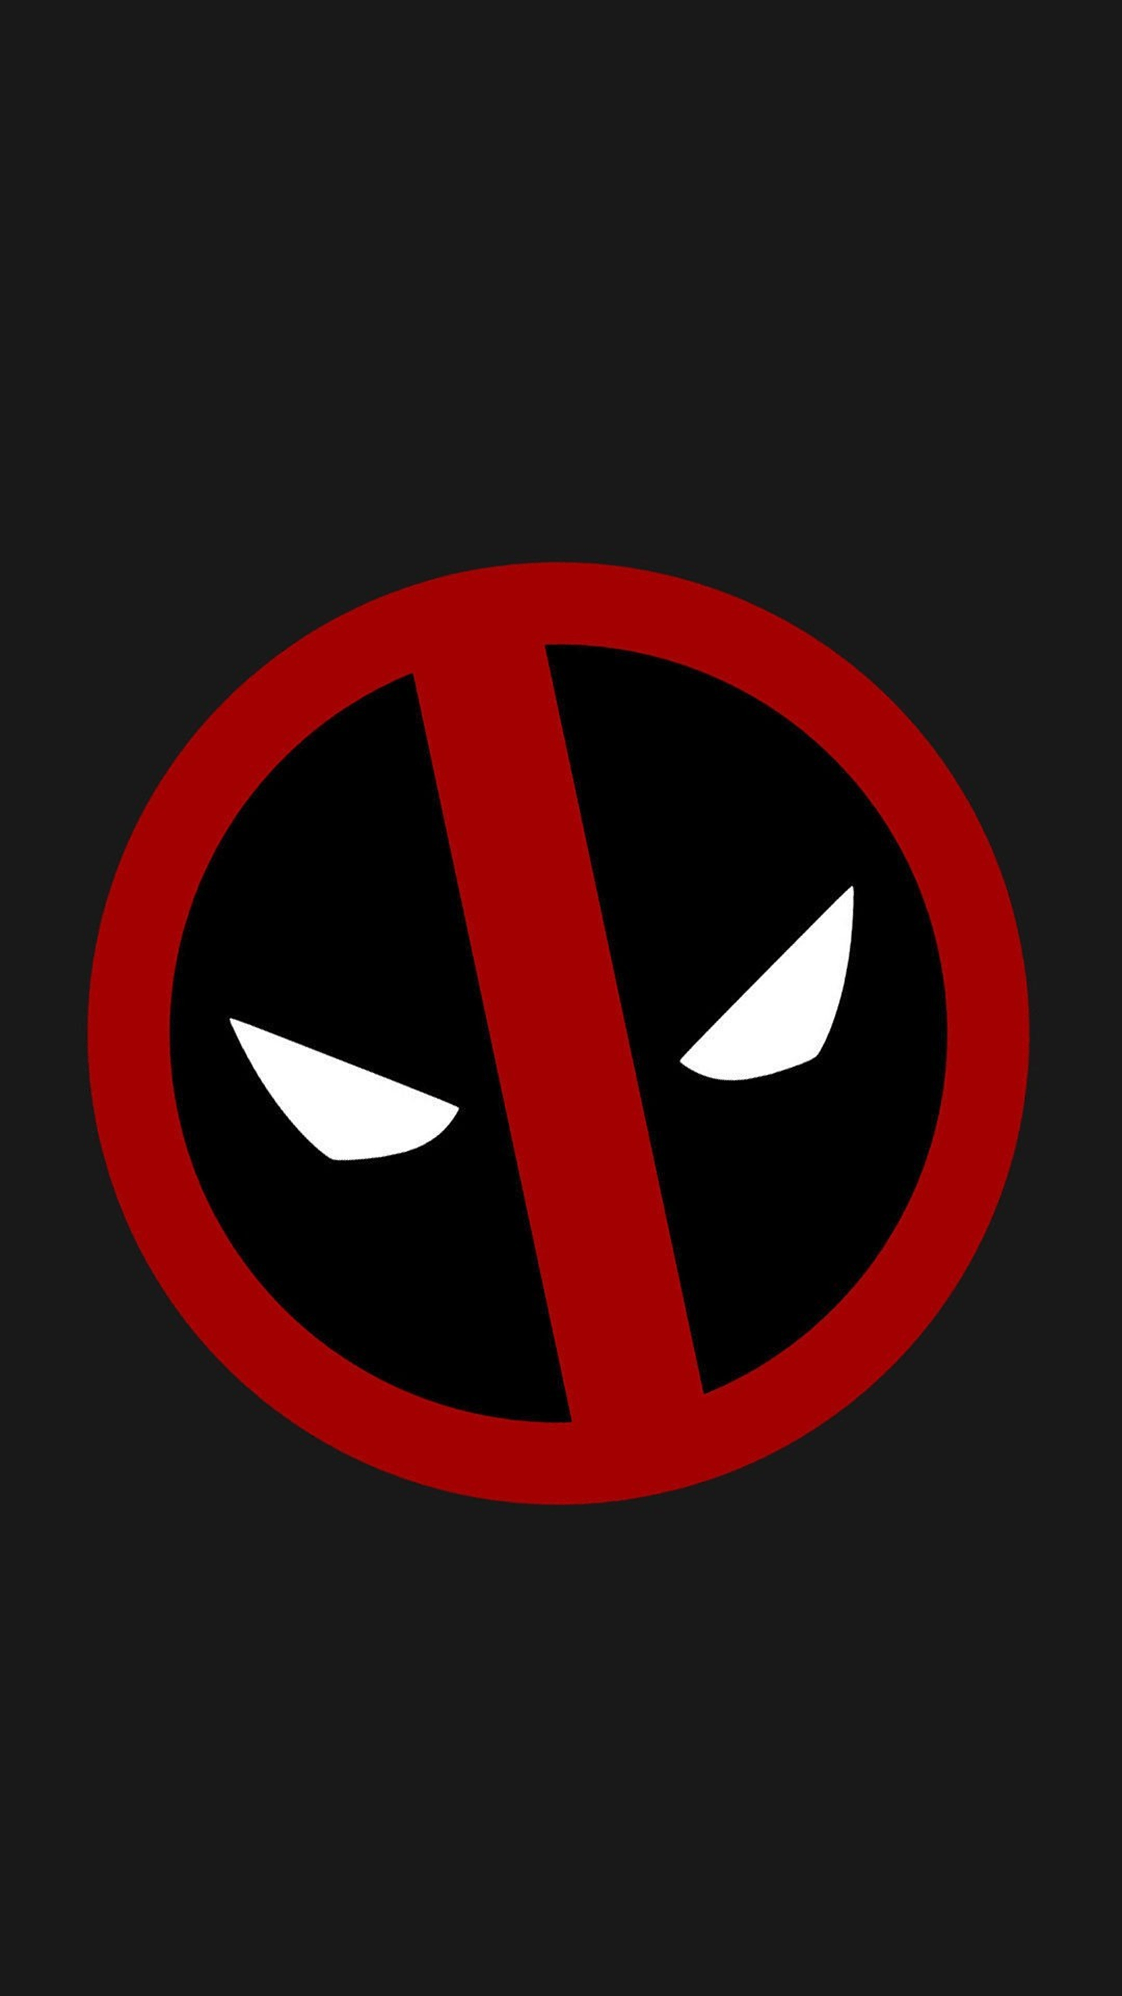 1122x1996 Wallpaper Deadpool Android | Whatsapp| Anime| Quote| Girly| Cartoon ...